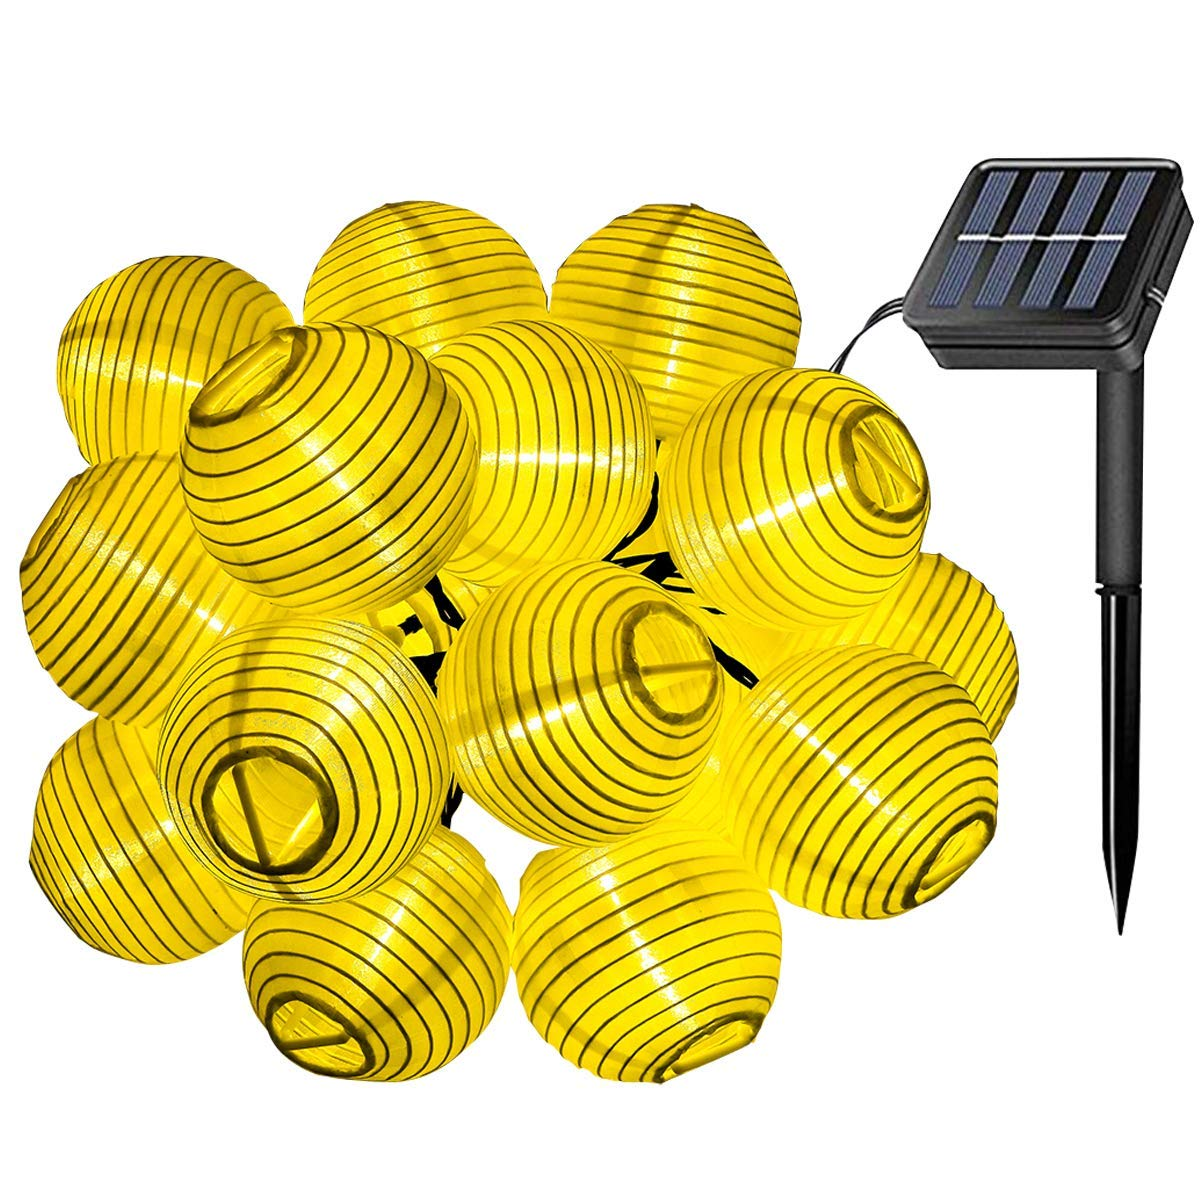 Solar Lichterkette Warmweiß Lampion 20LEDs 5 Meters Laterne